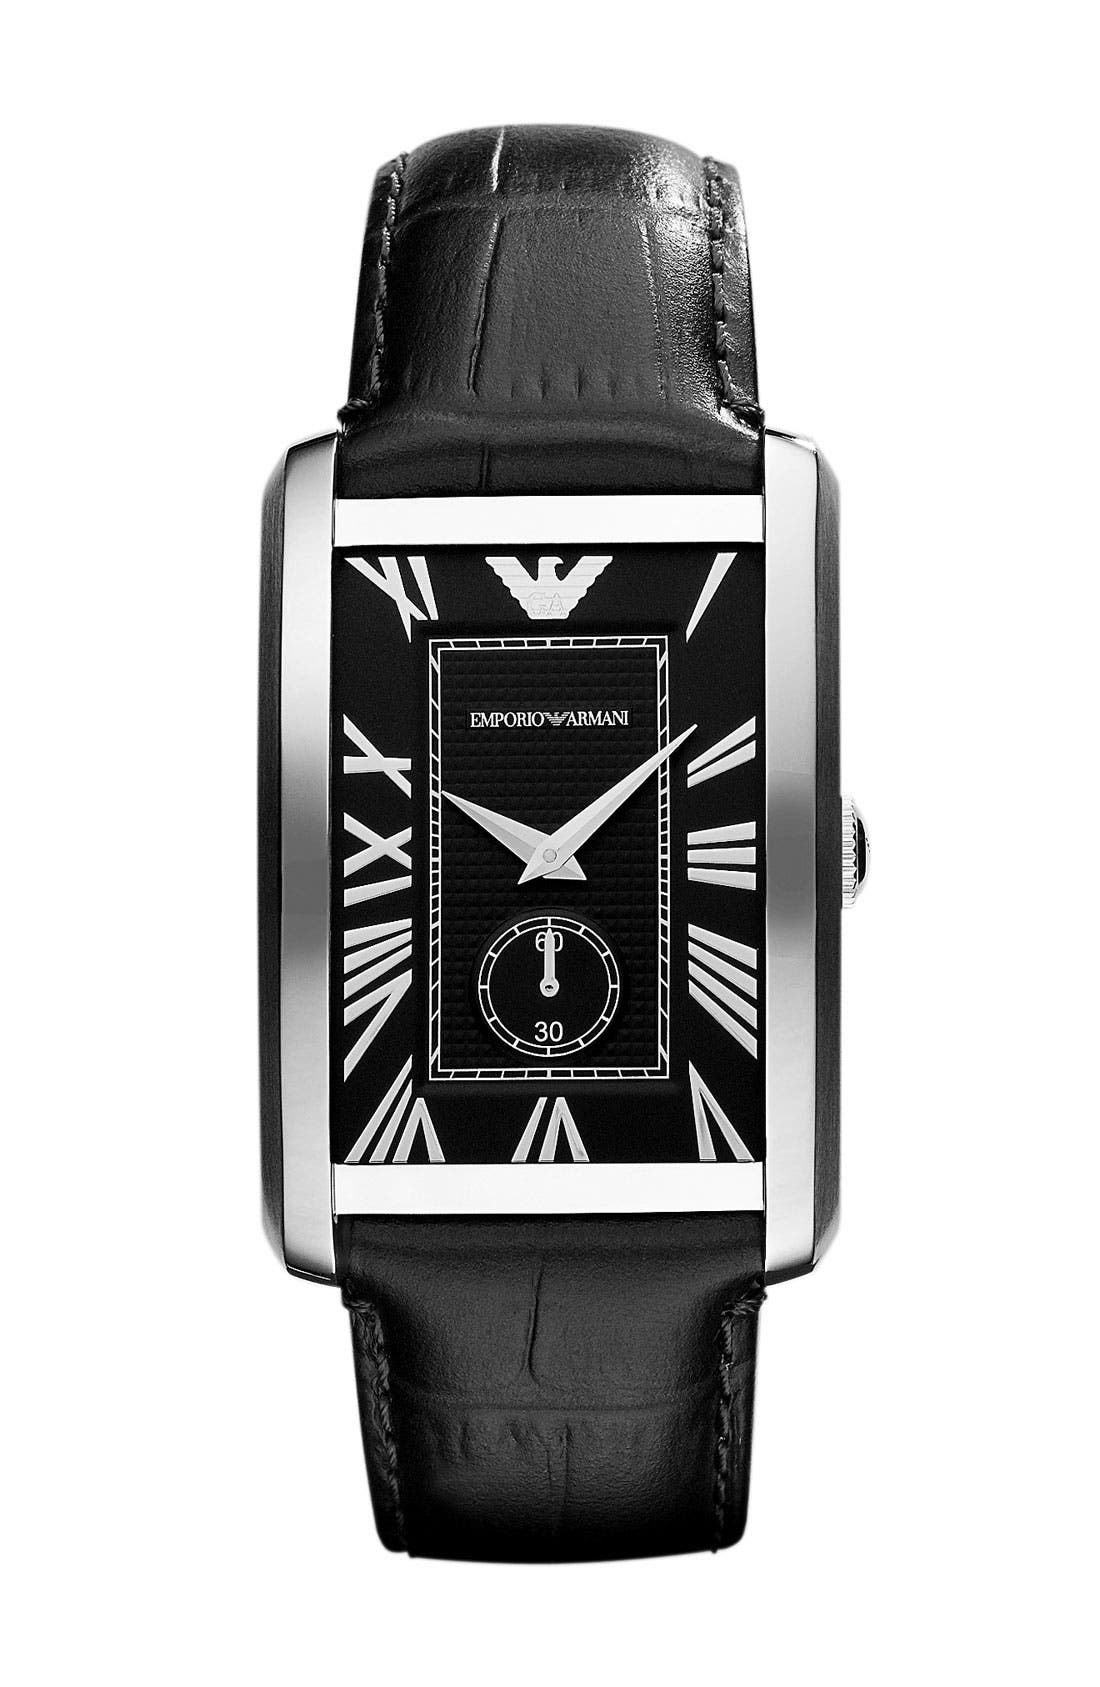 Main Image - Emporio Armani 'Classic - Large' Rectangular Dial Watch, 31mm x 39mm